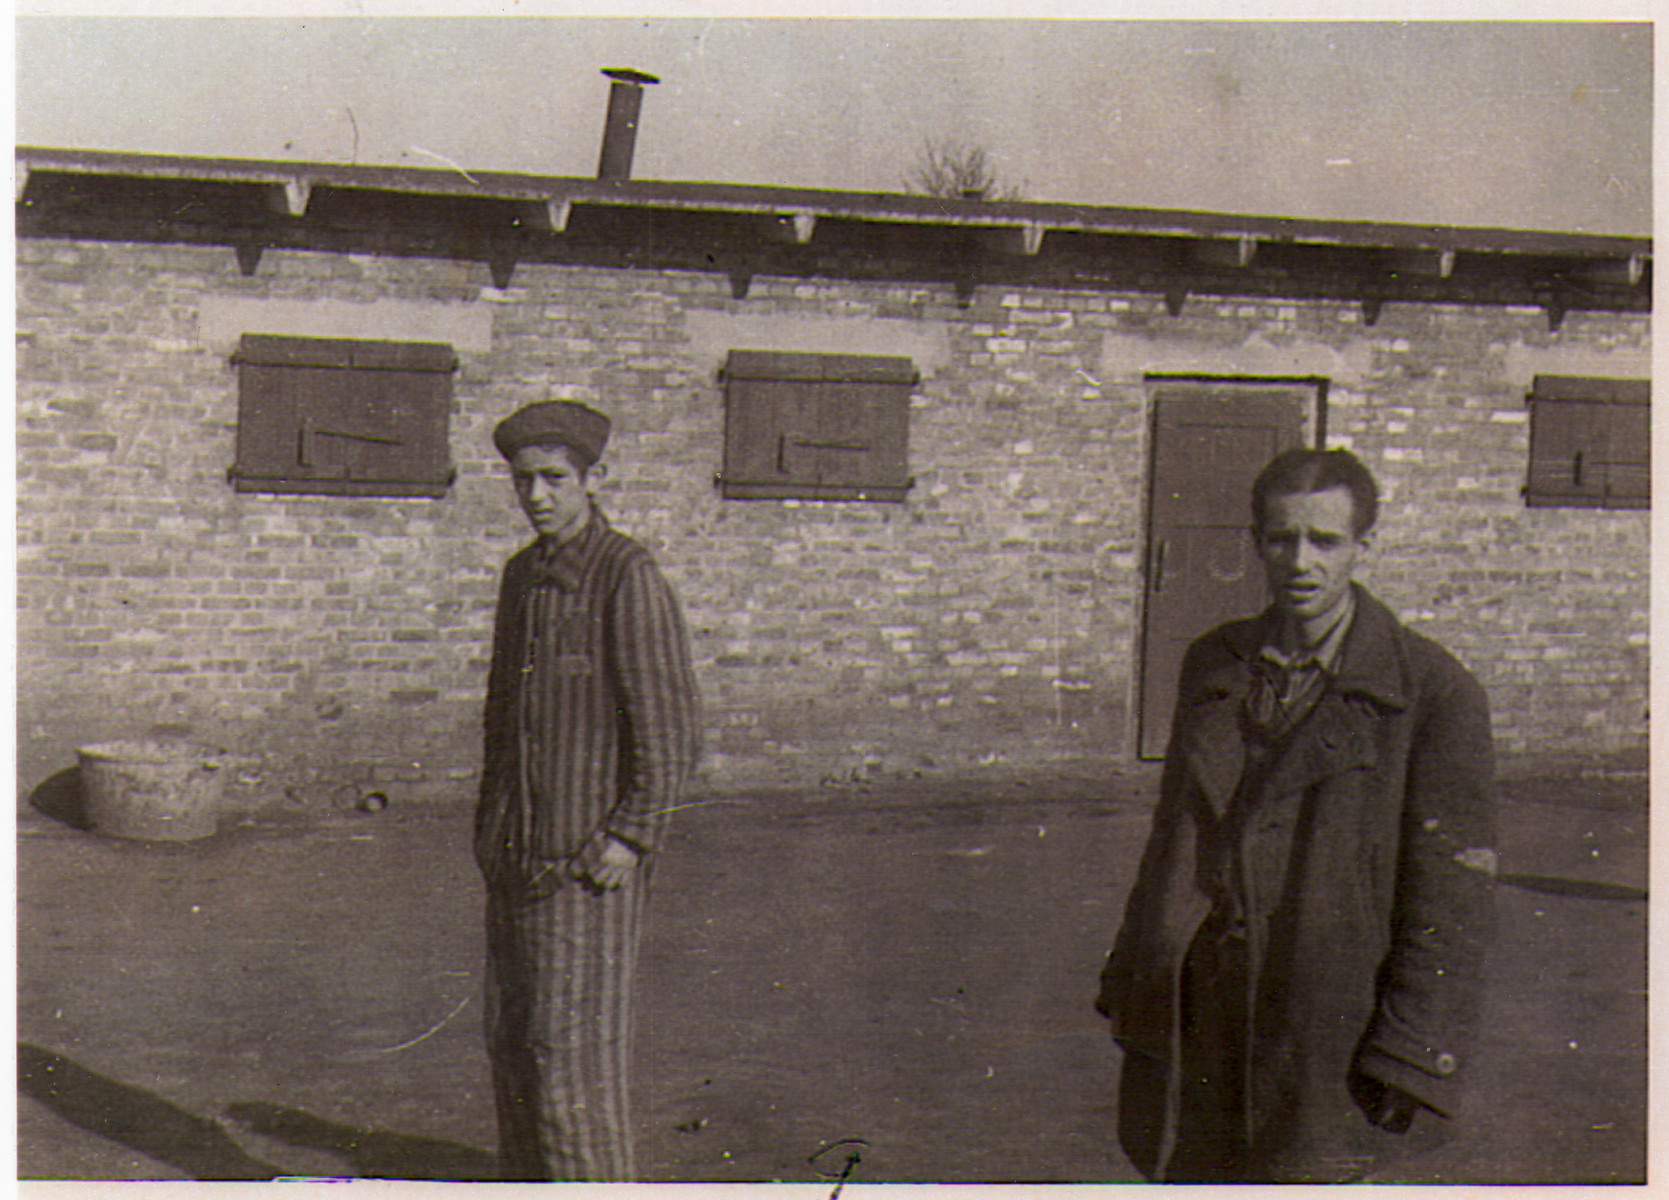 Two survivors of the Hanover-Ahlem concentration camp stand in front of a barrack.